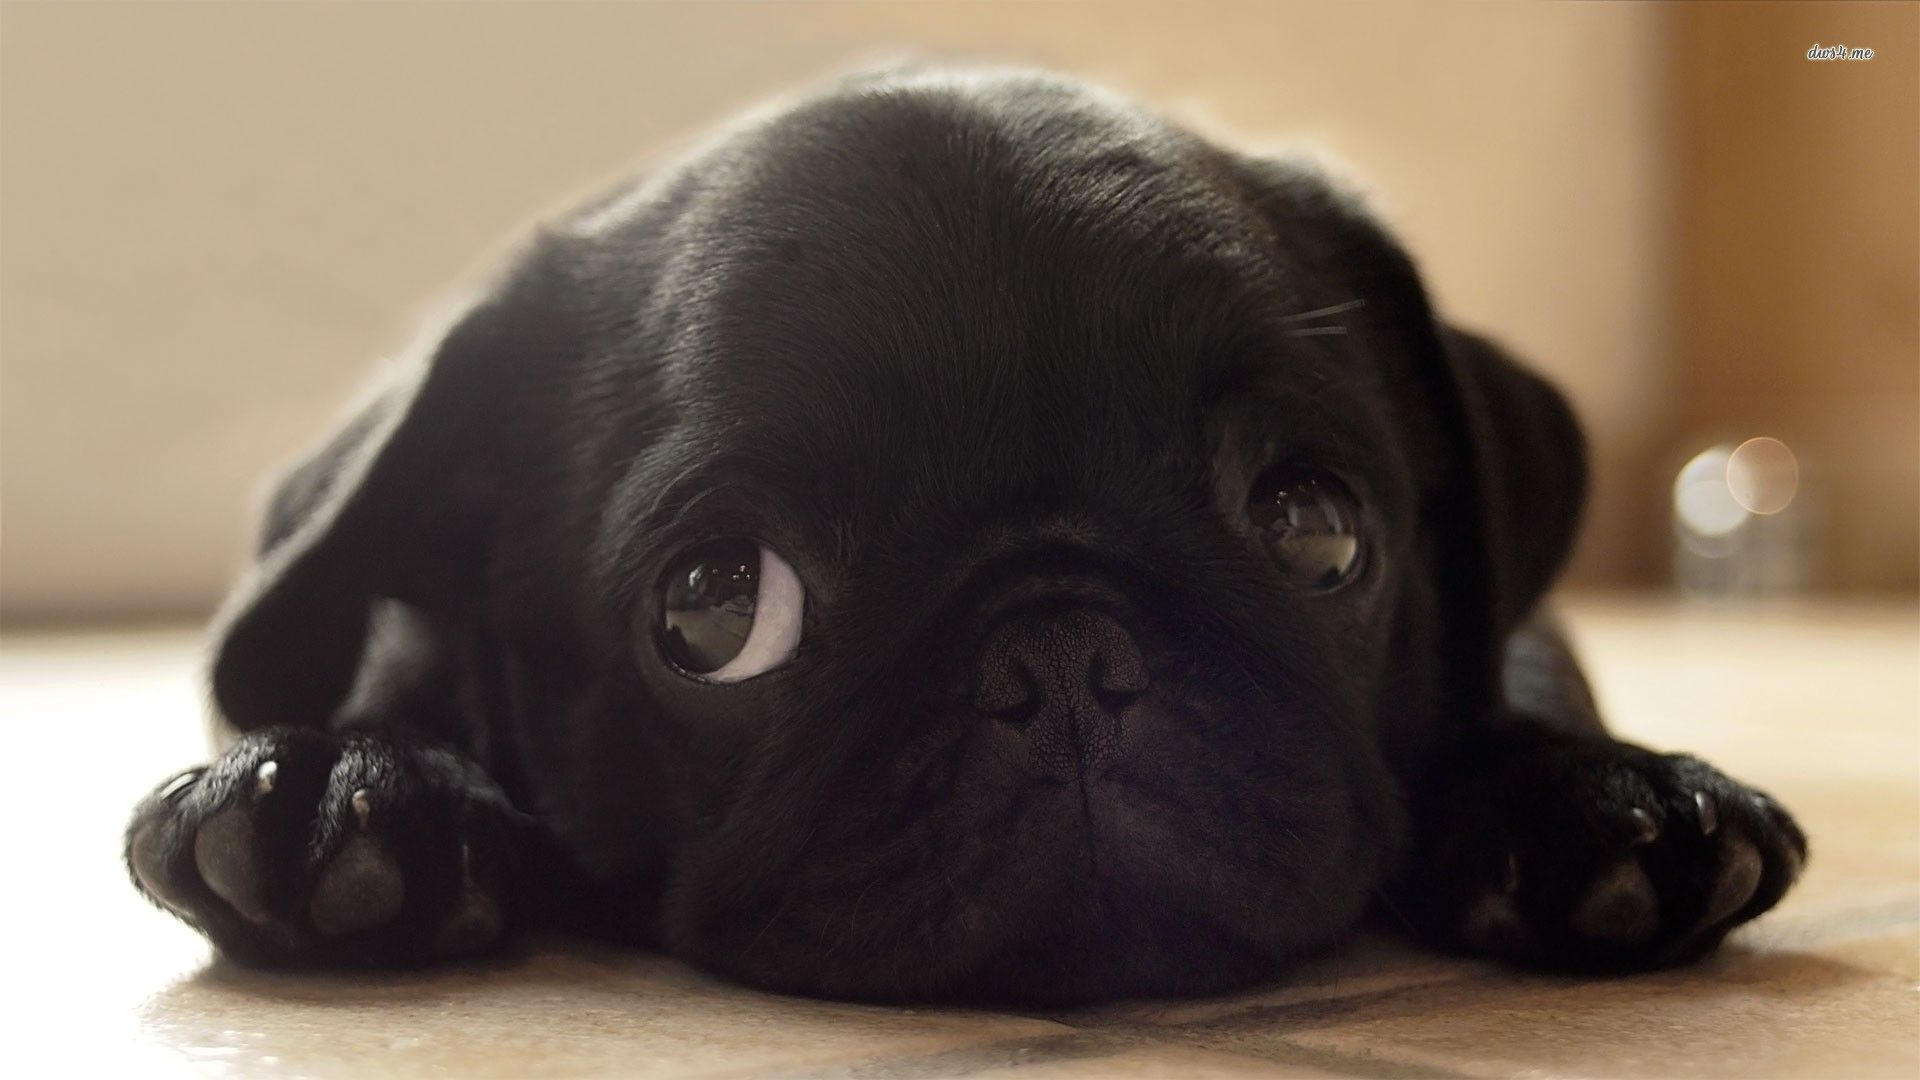 Black Pug Puppy Hd Wallpaper Black Pug Puppies Pug Dog Pictures